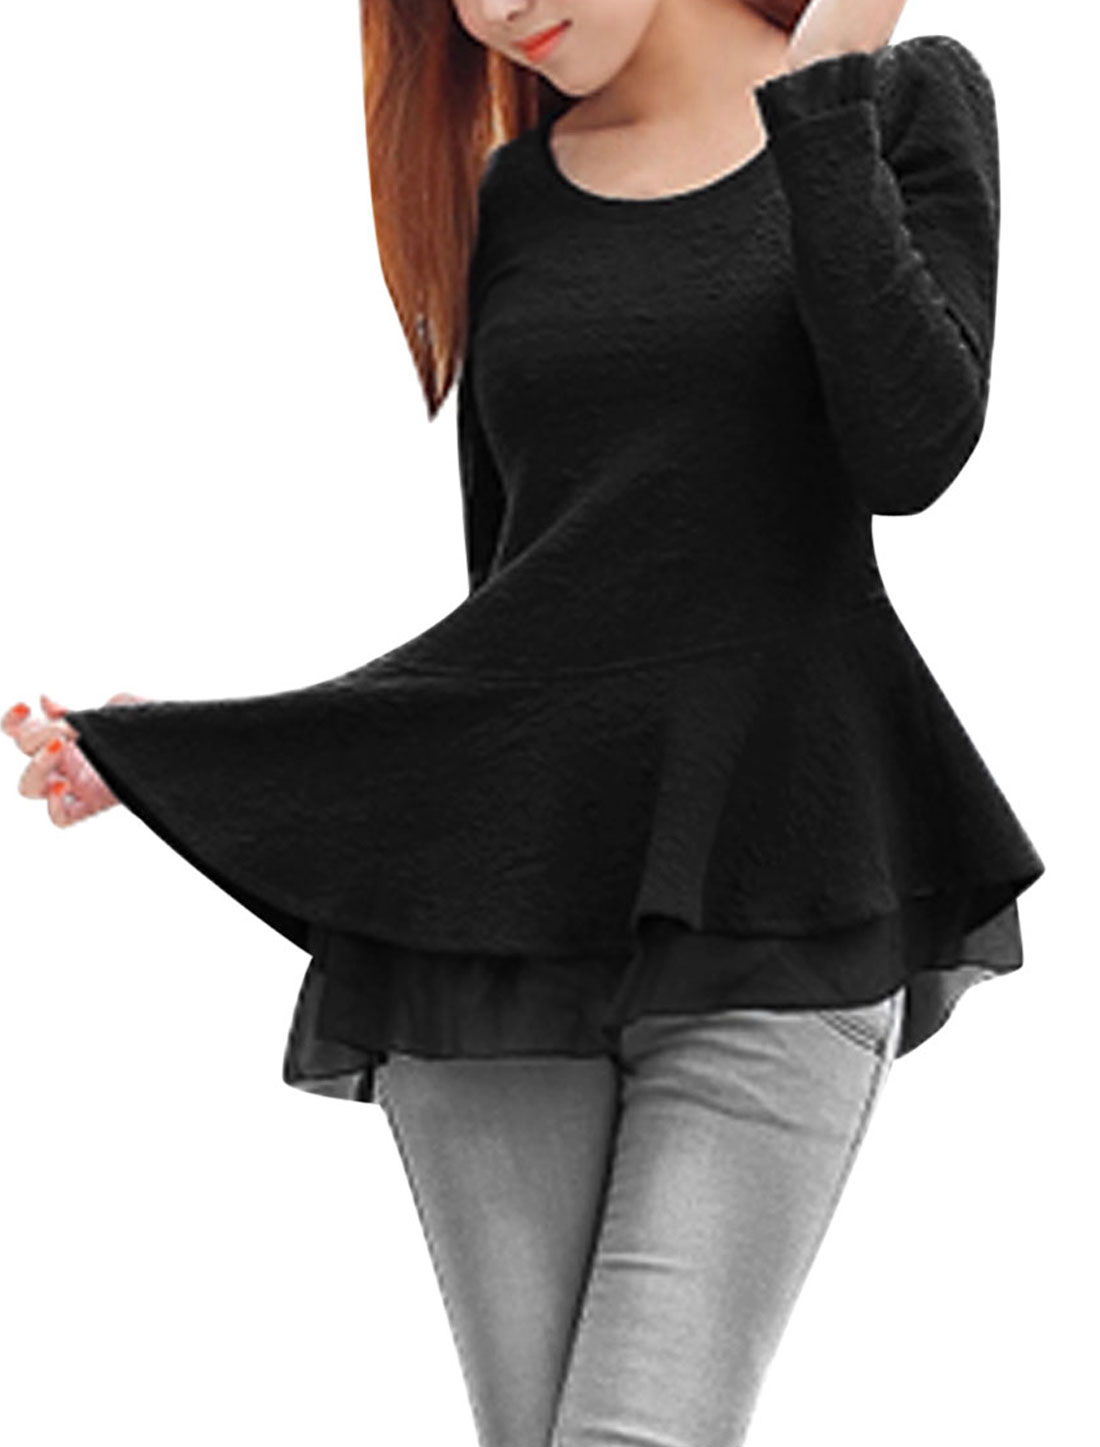 Ladies Black Pullover Chiffon Splice Texture Cut Out Back Peplum Top S